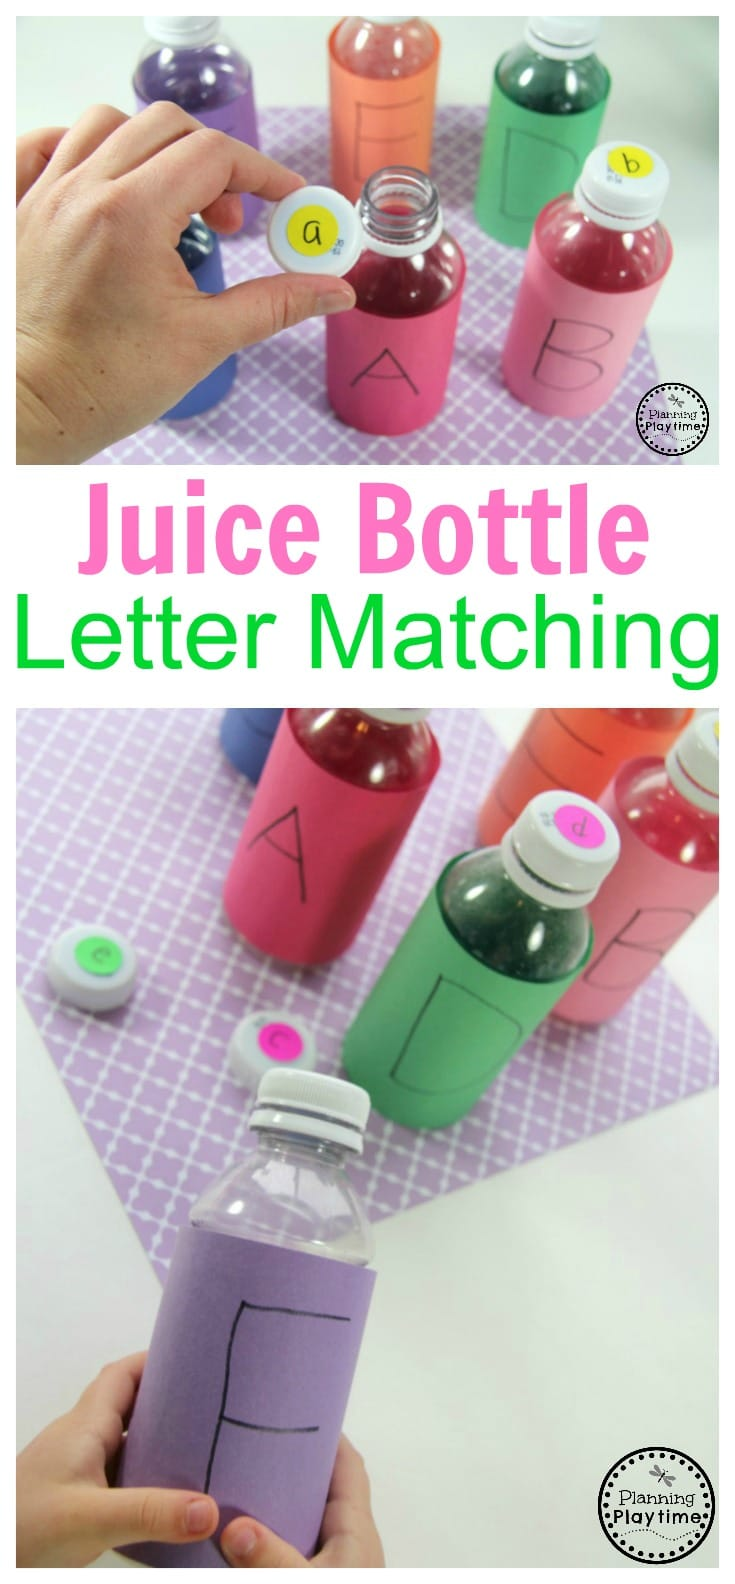 Preschool Letter Matching Activity using Juice Bottles